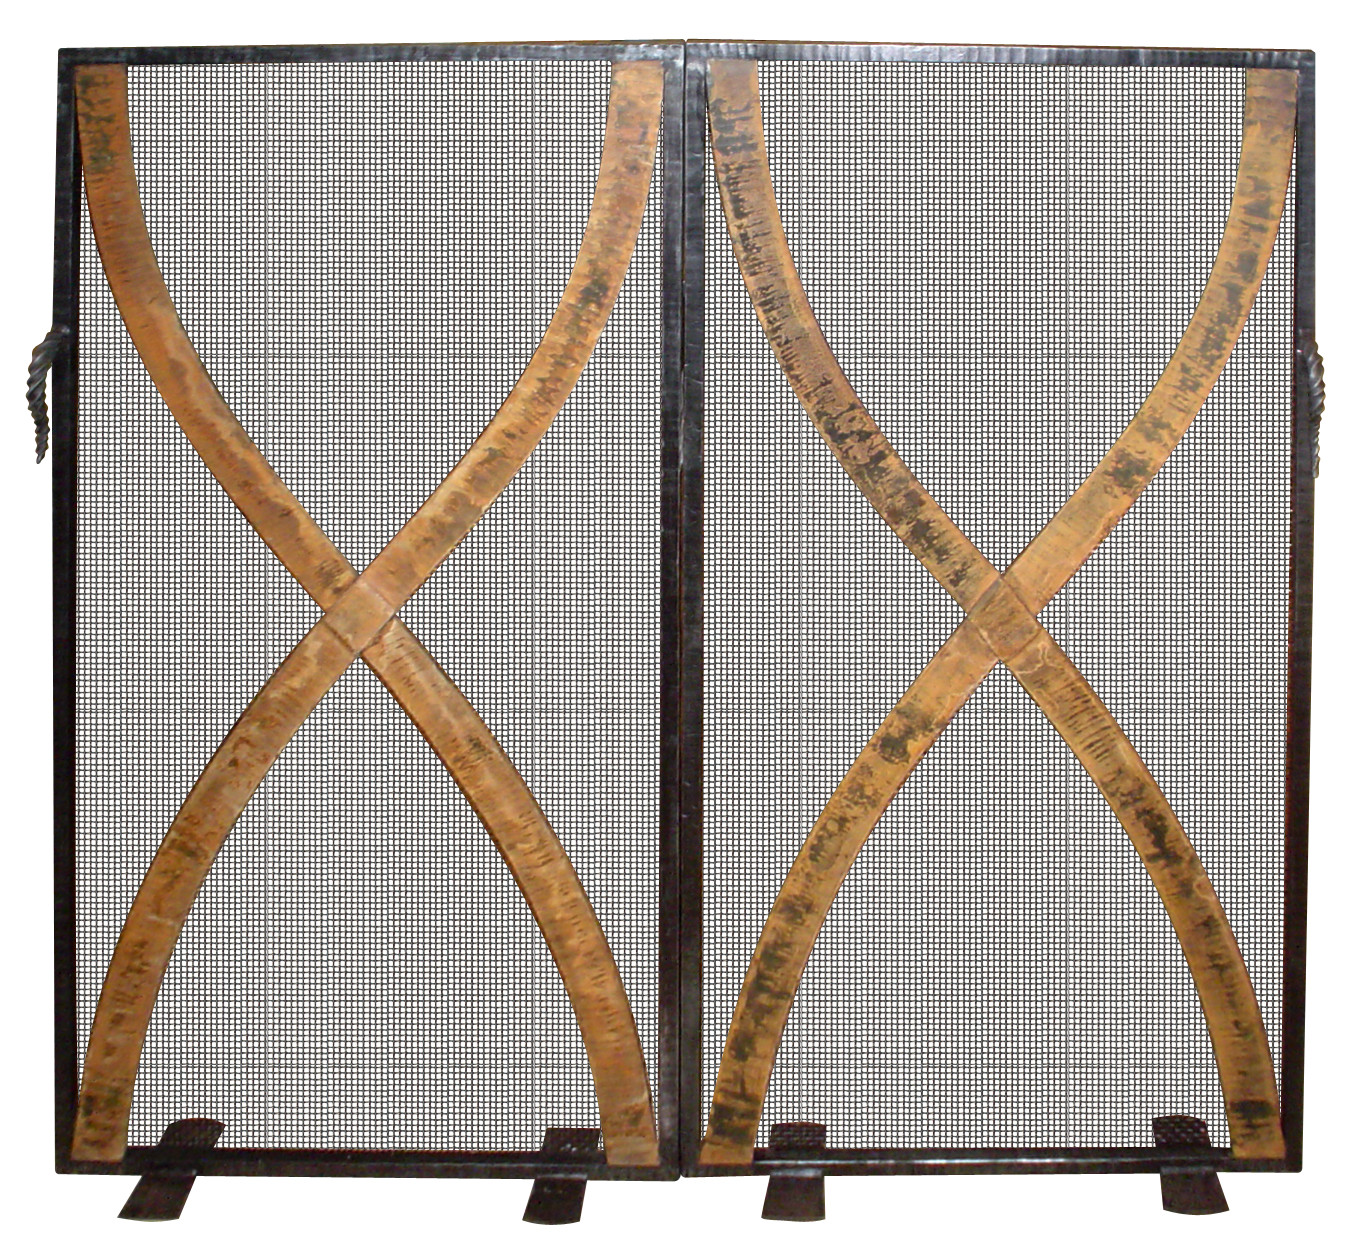 Fire Screen #10: forged steel and steel mesh with rusted hammered steel strapping design.